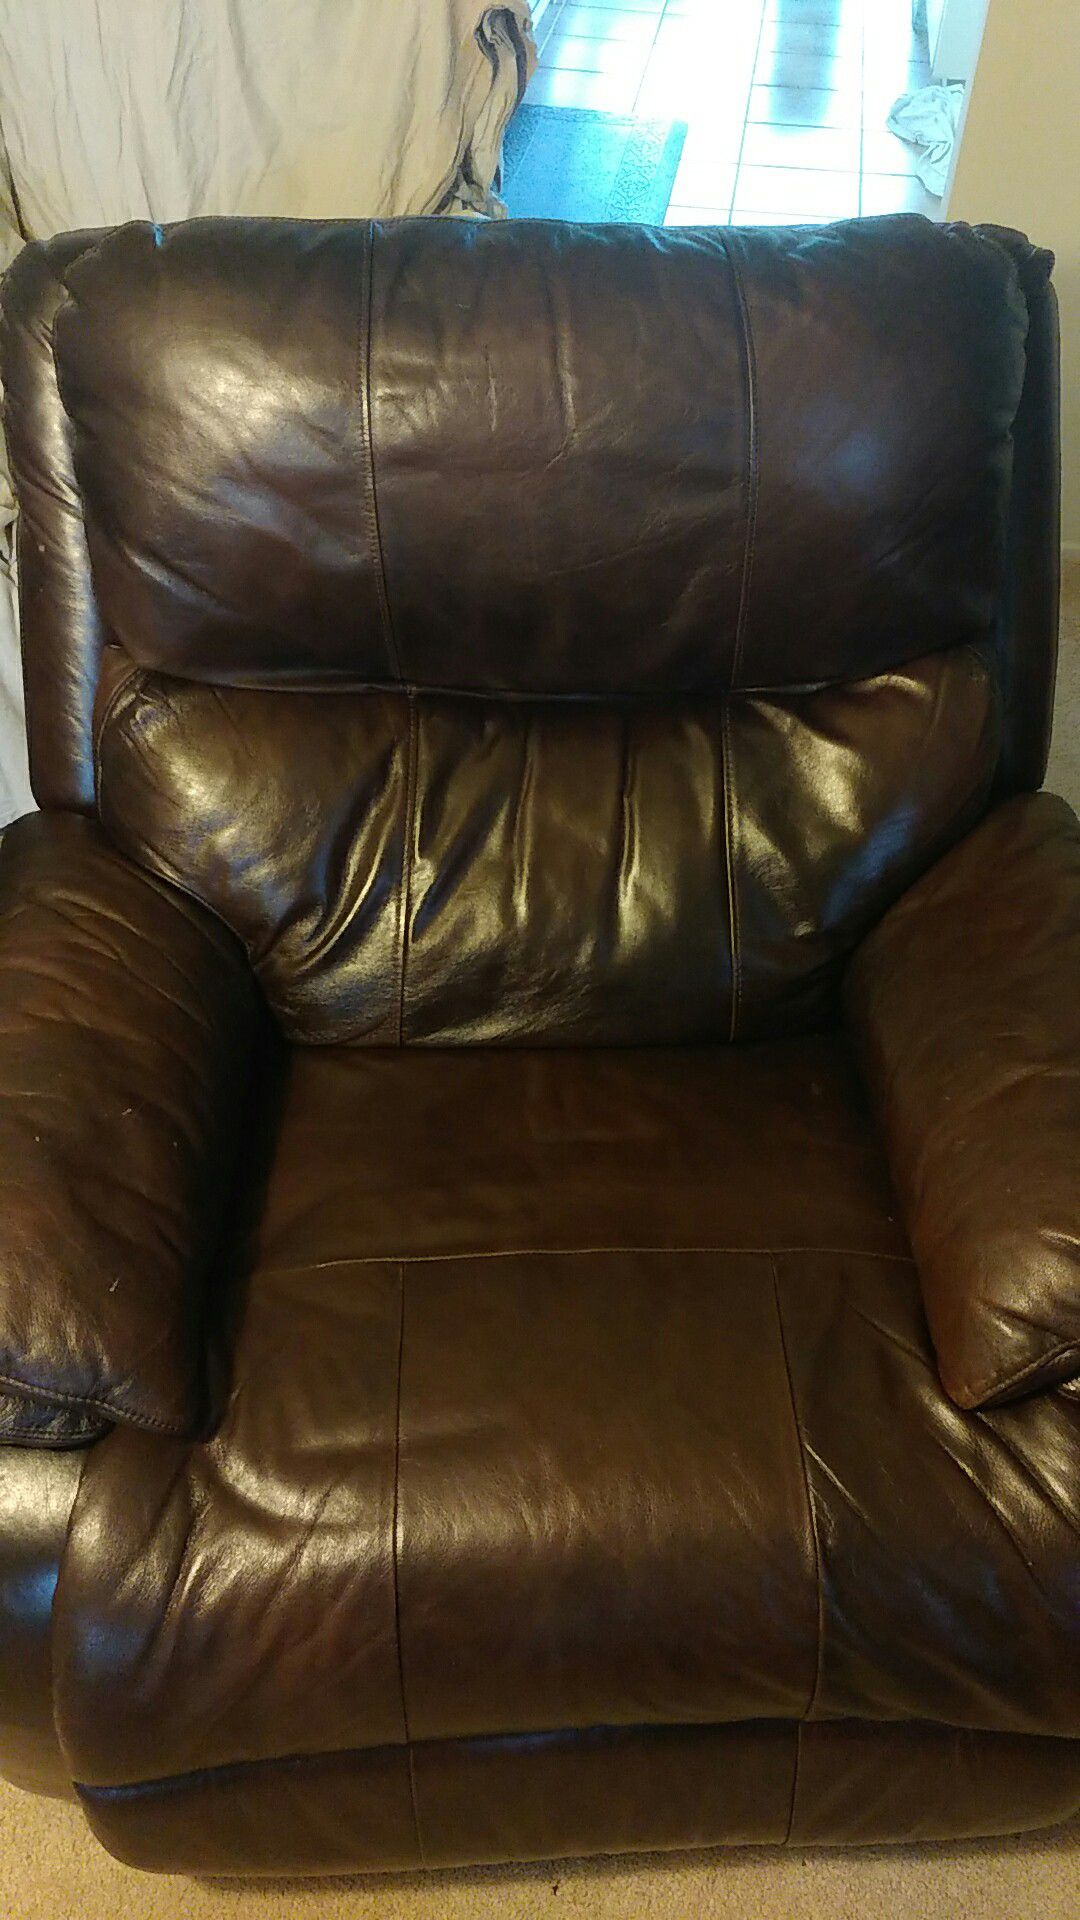 Recliner $100 pickup - paid 200 last year